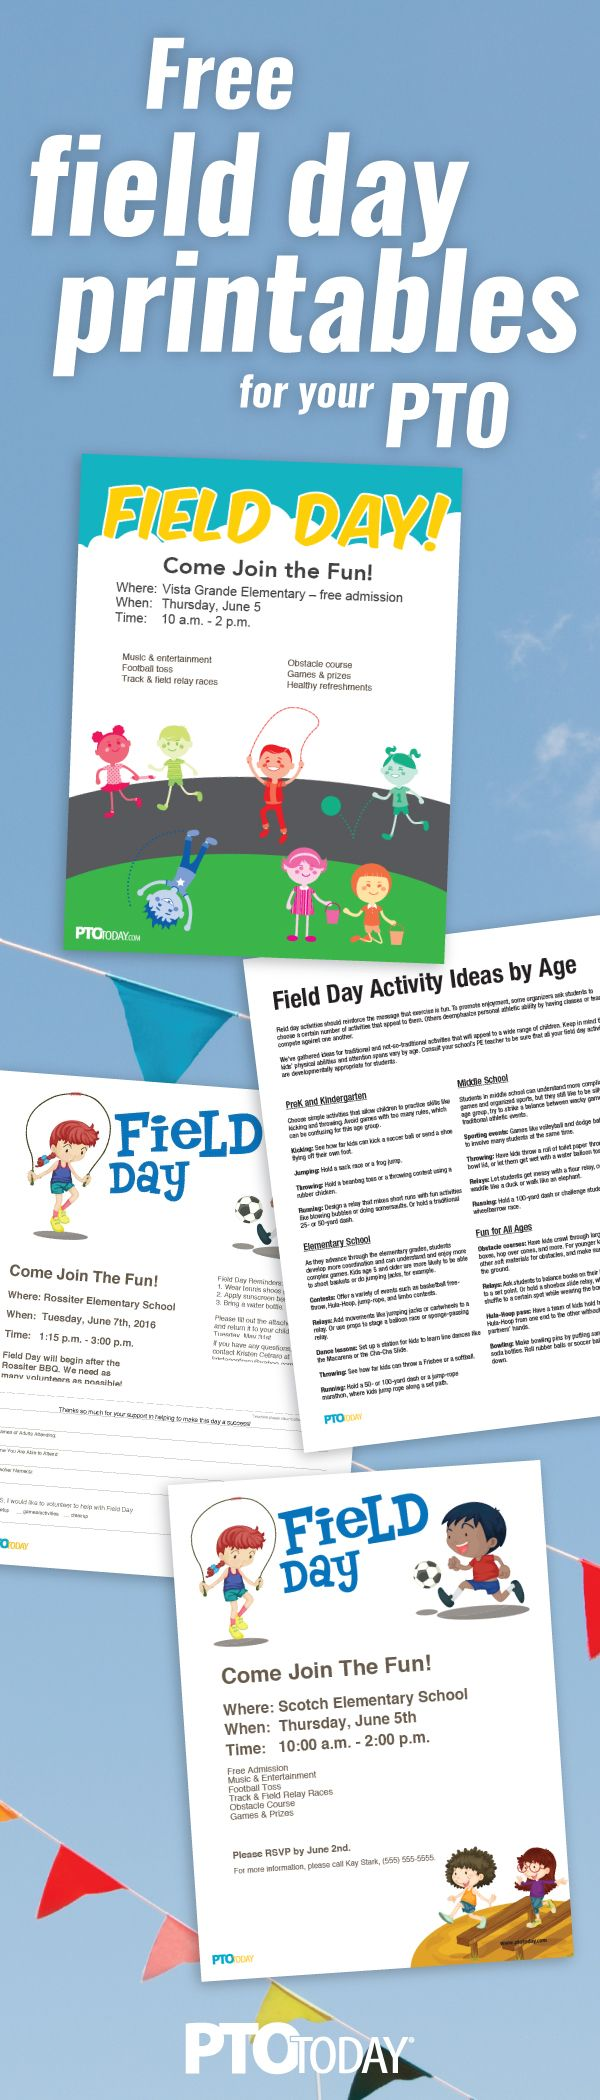 PTO and PTA Leaders: Promote your school field day with our flyers, posters, and more!